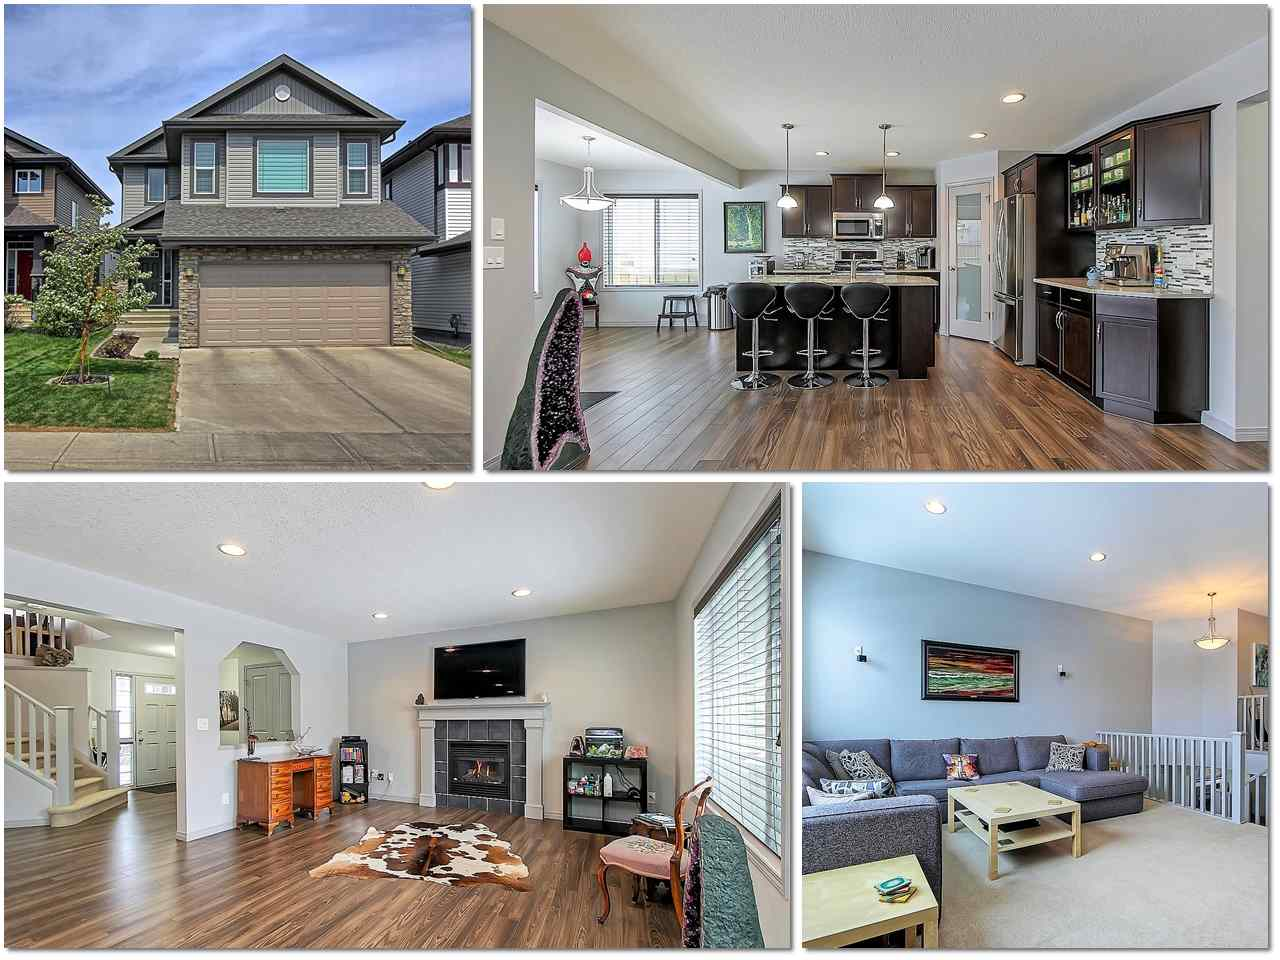 Main Photo: 538 MCDONOUGH Way NW in Edmonton: Zone 03 House for sale : MLS®# E4105995